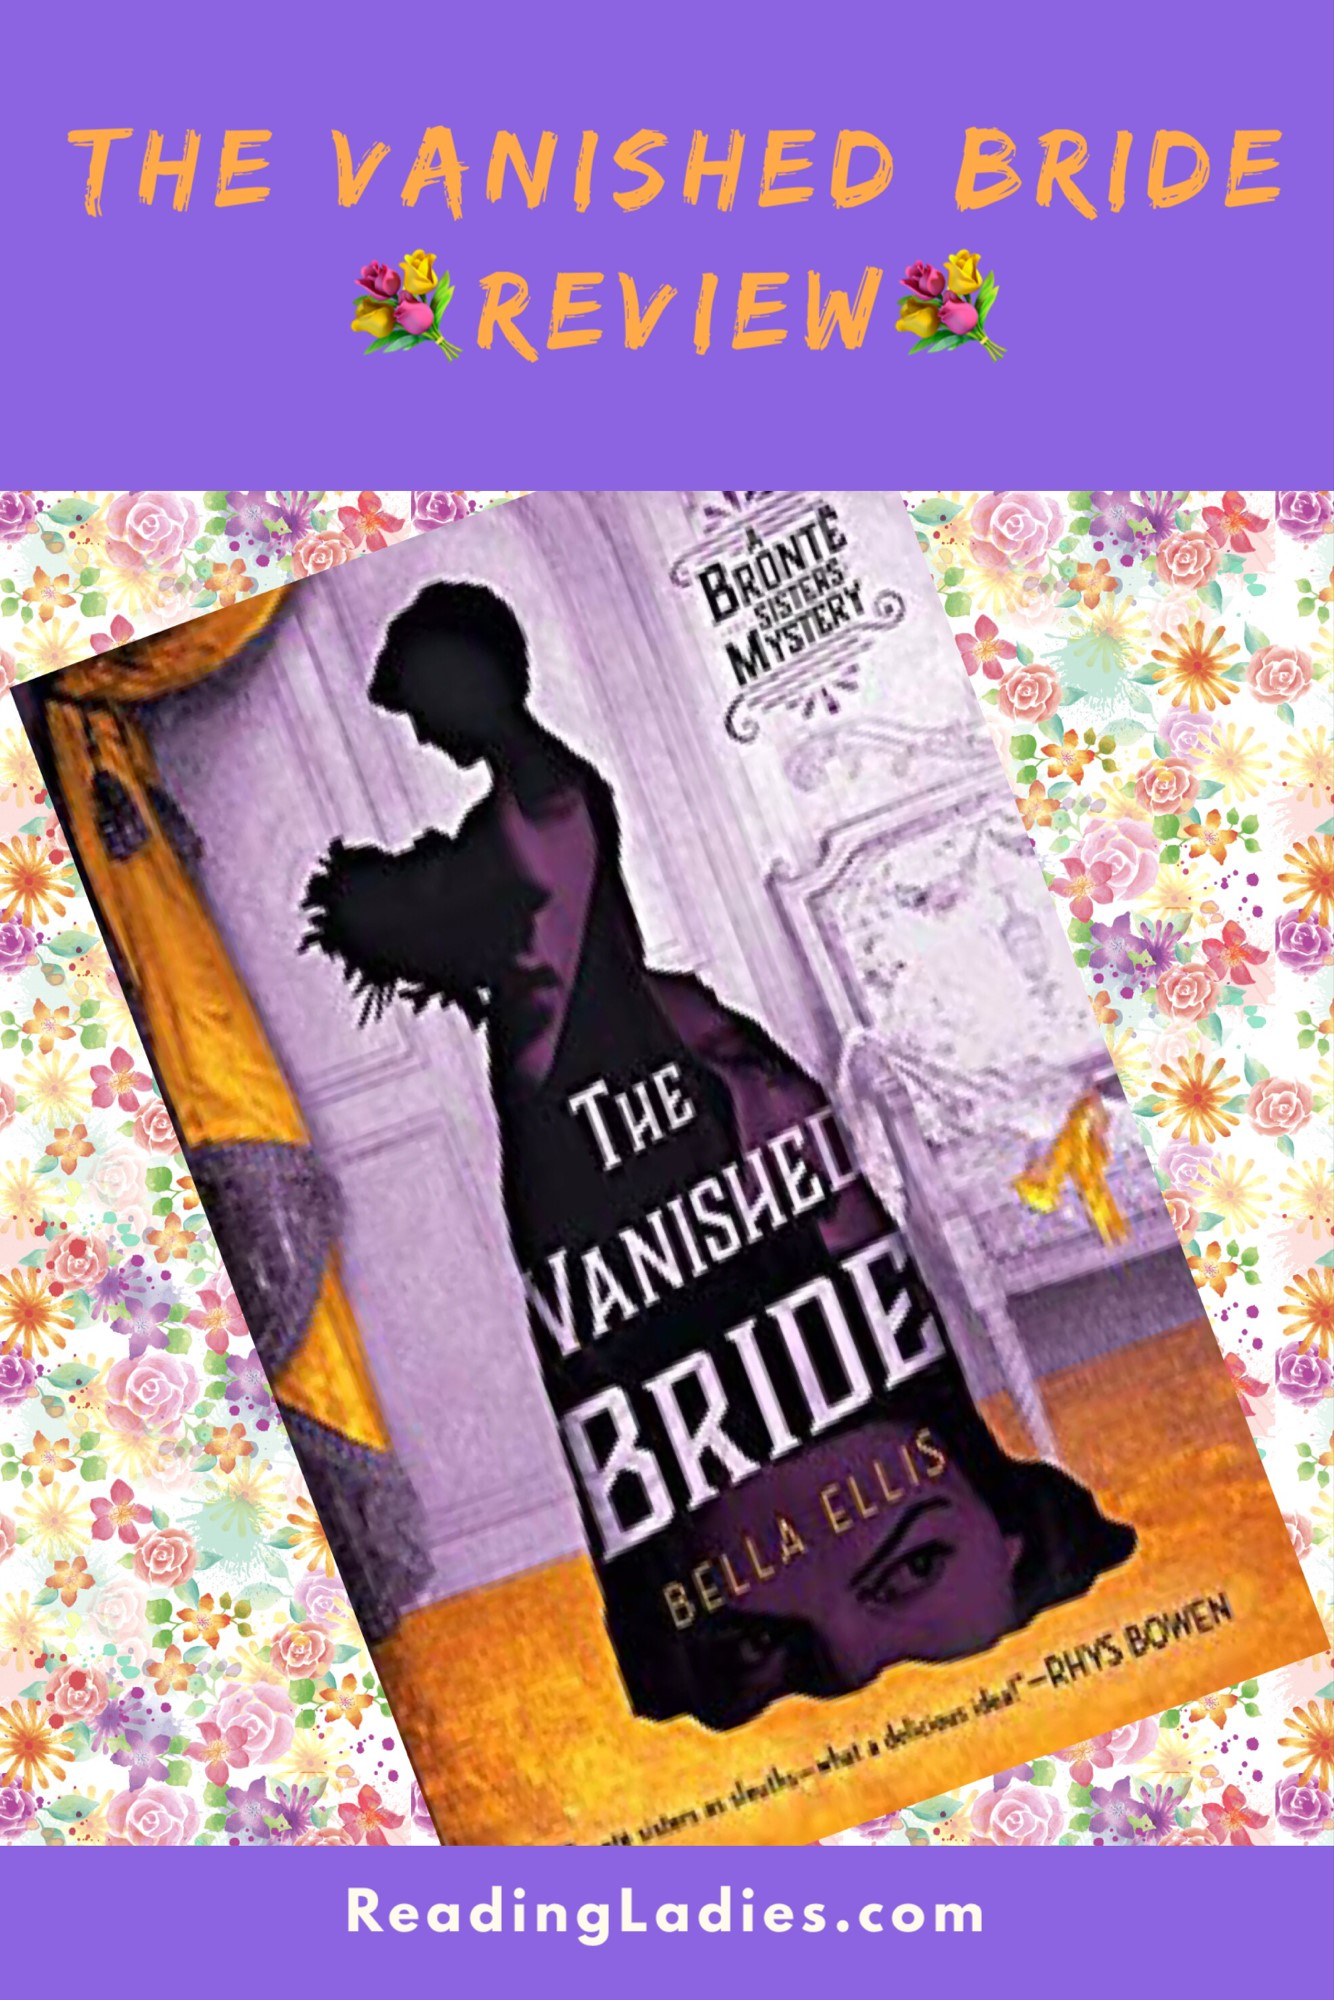 The Vanished Bride Review